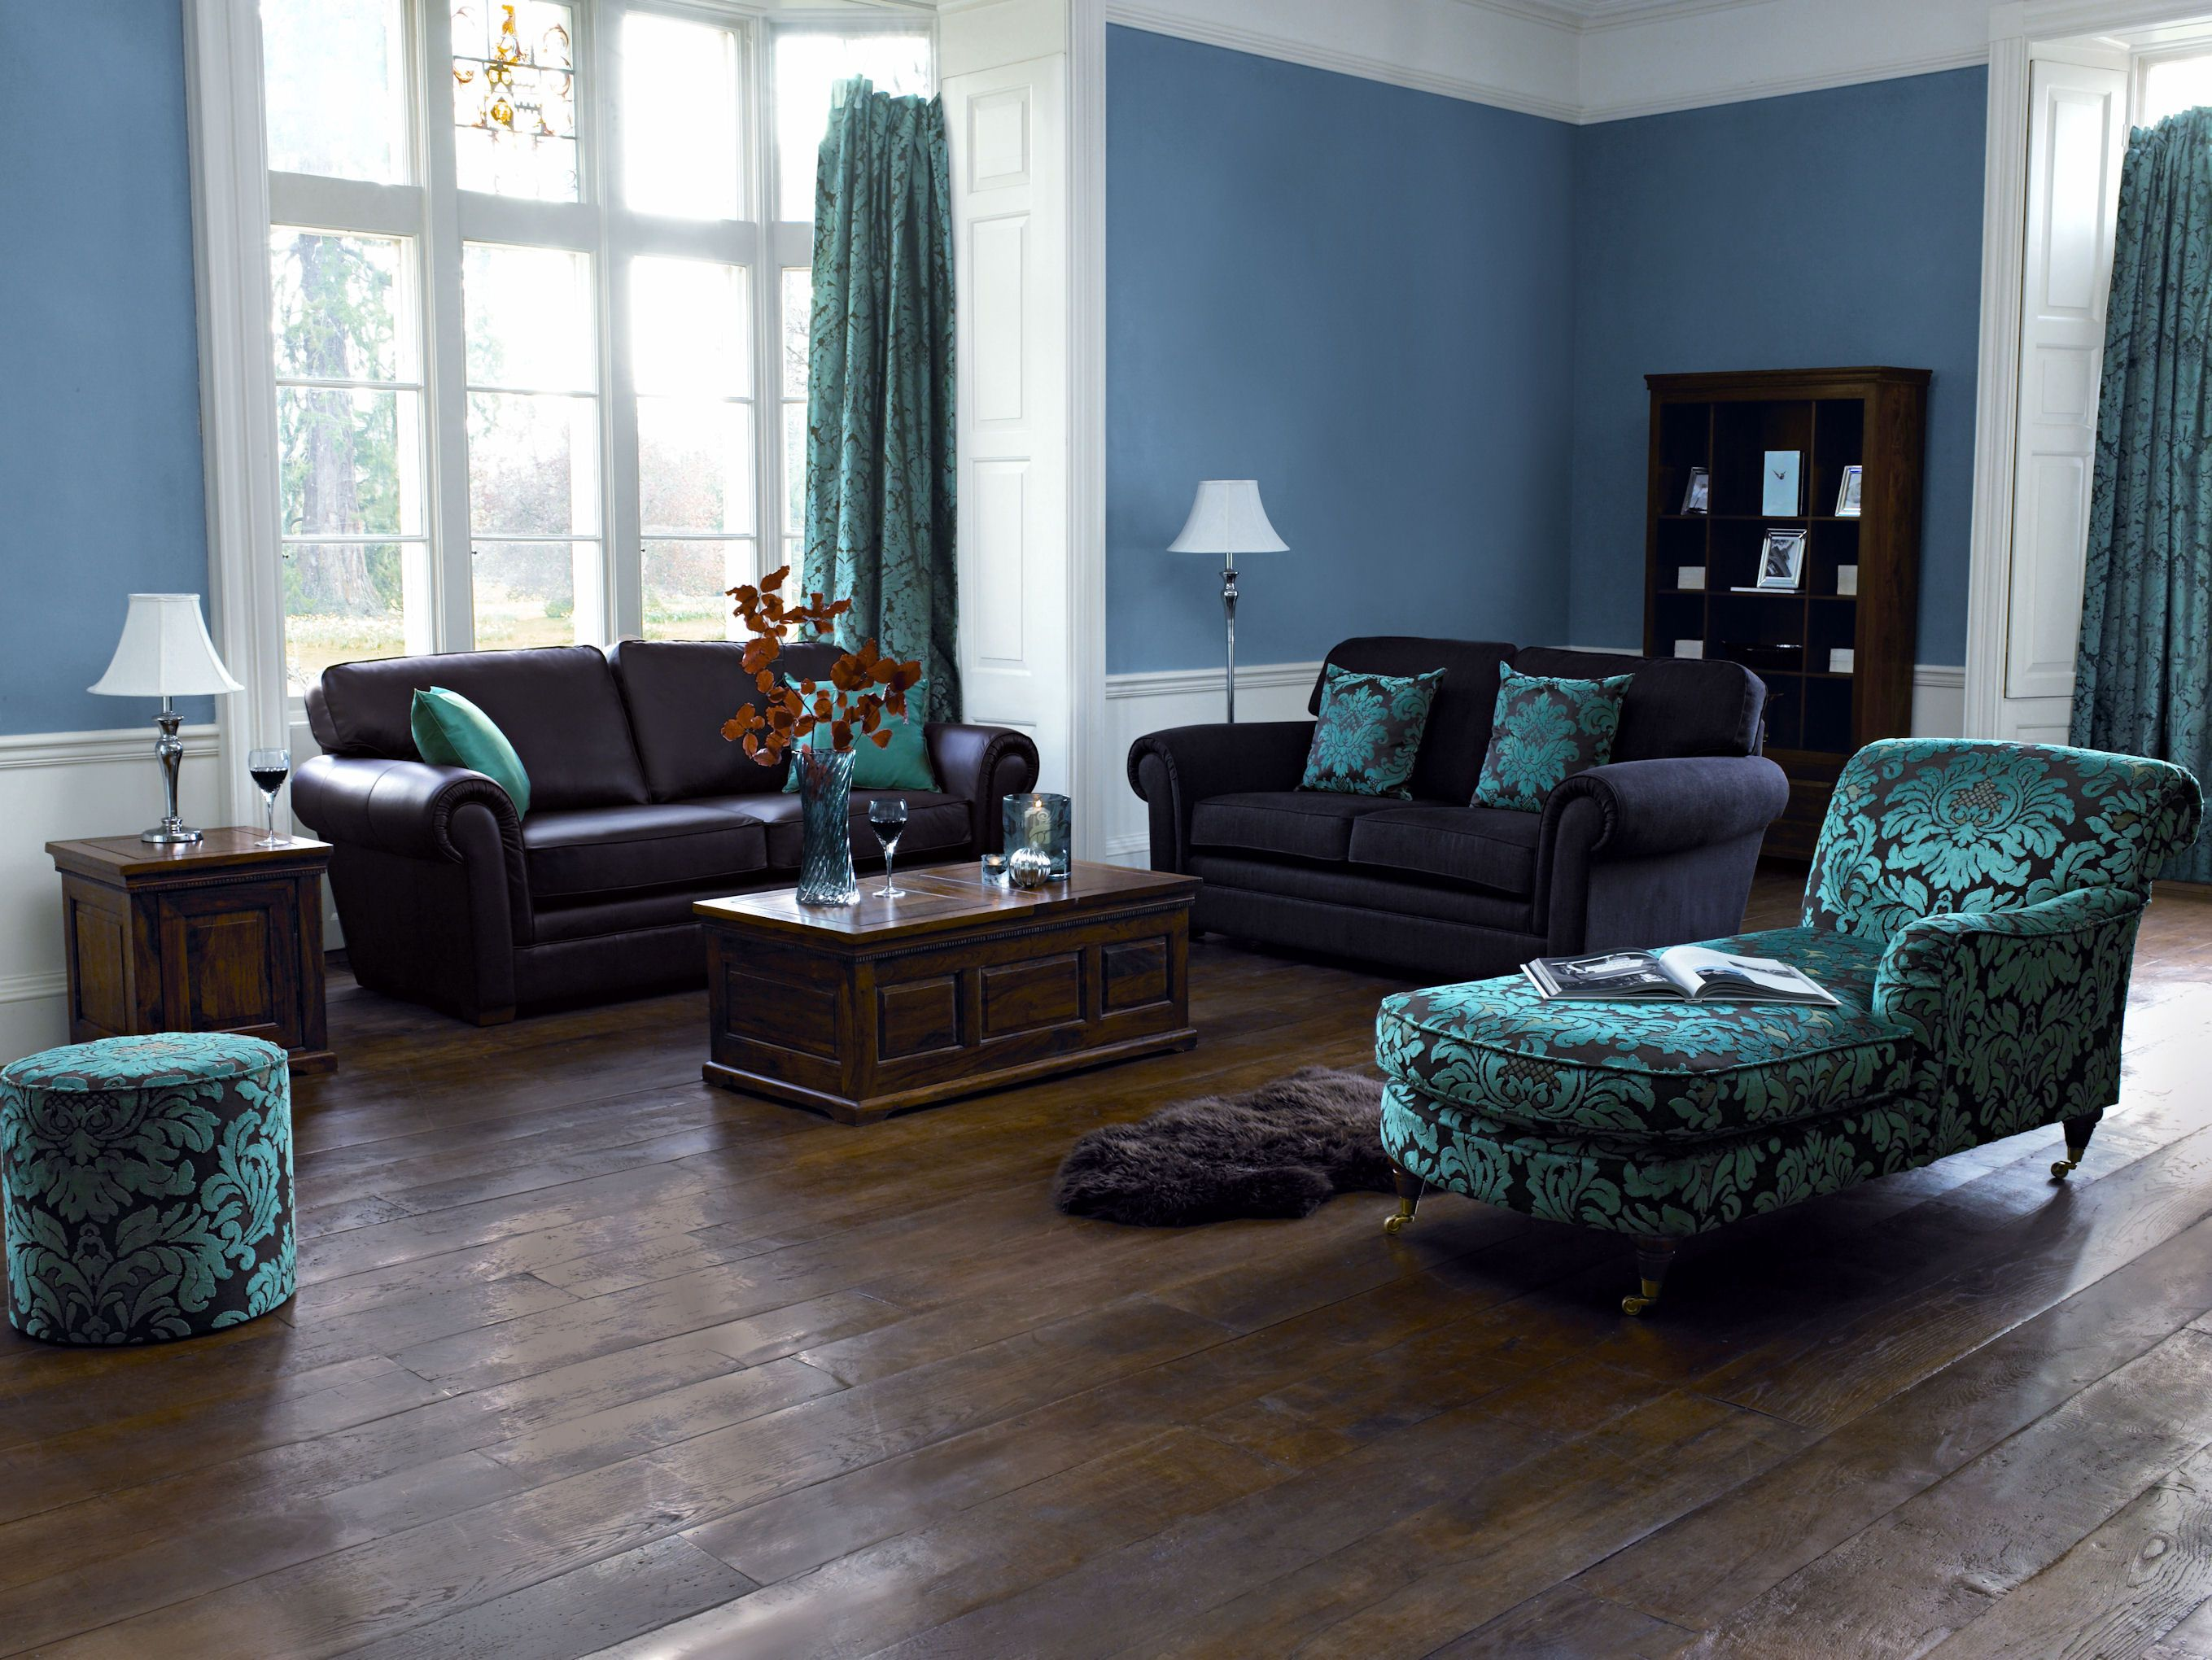 Blue Paint Color Ideas for Living Room with Dark Furniture And. Black Living Room Furniture Sets. Luxurious Cozy Black Leather Sofa Design in Stunning Peach Colored. 16 Leather Sofas for Modern Living Room Design Bedrooms And